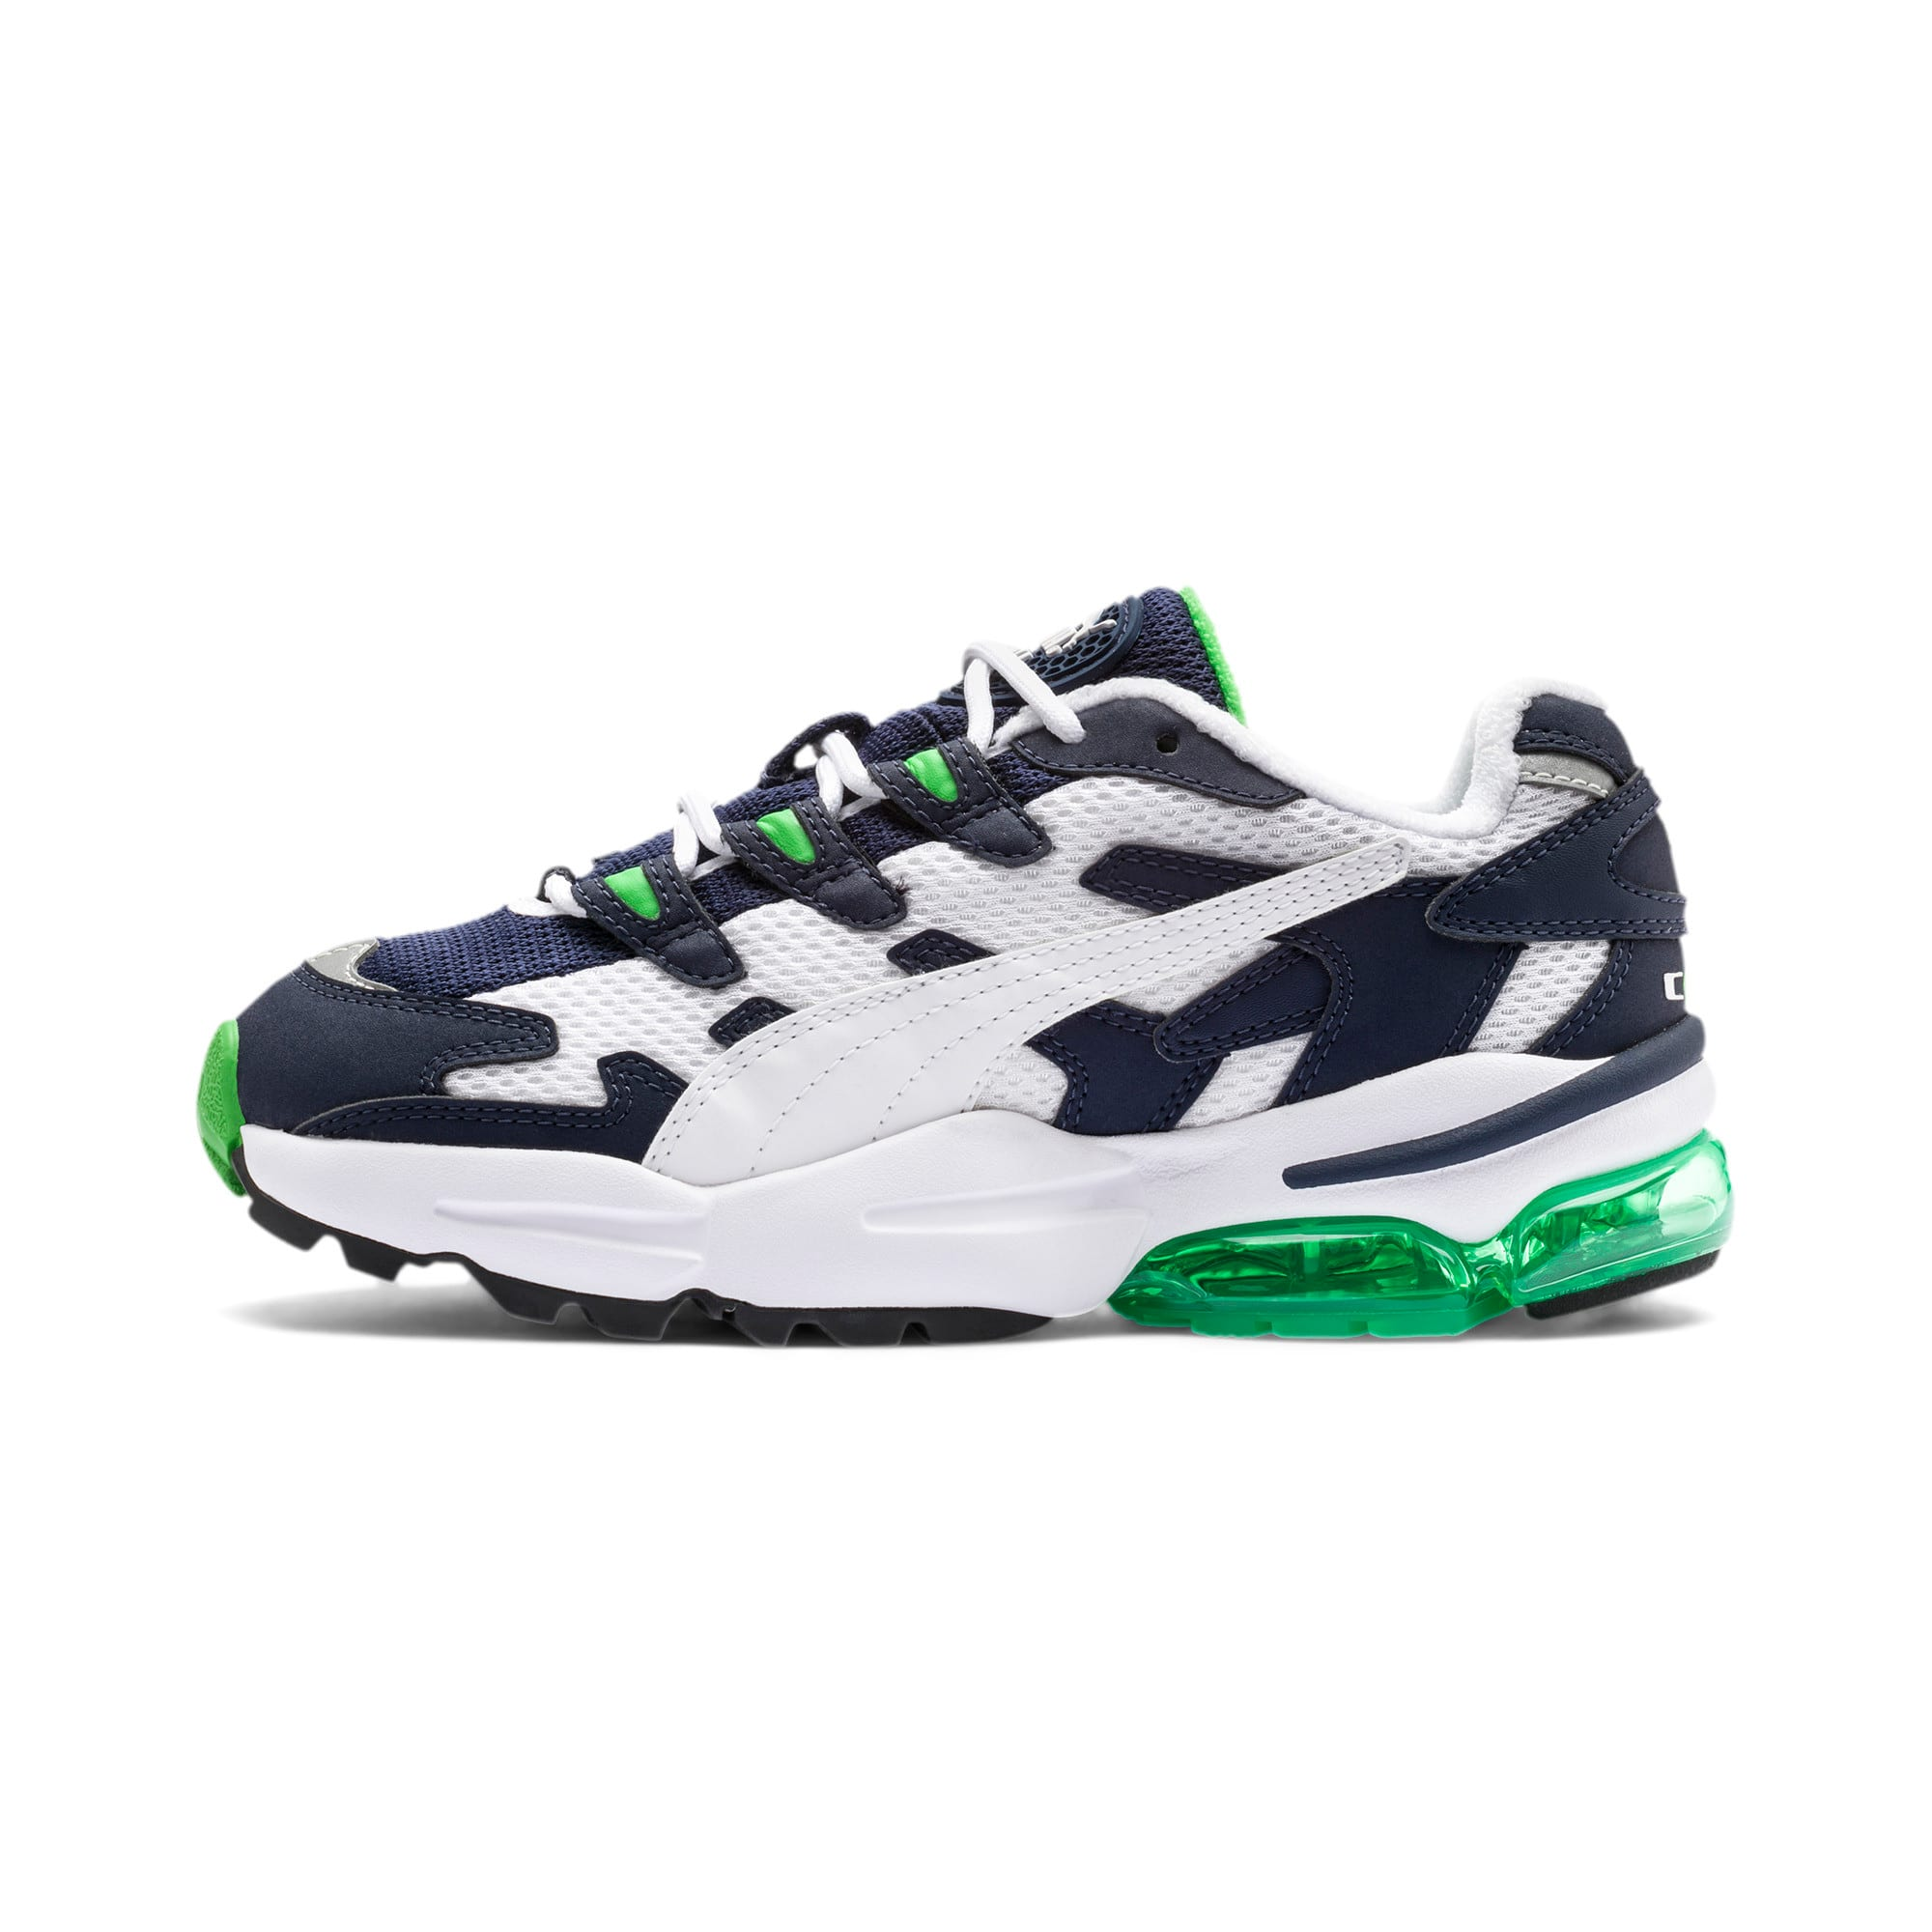 Puma Cell Viper | Puma in 2019 | Sneakers, Running sneakers